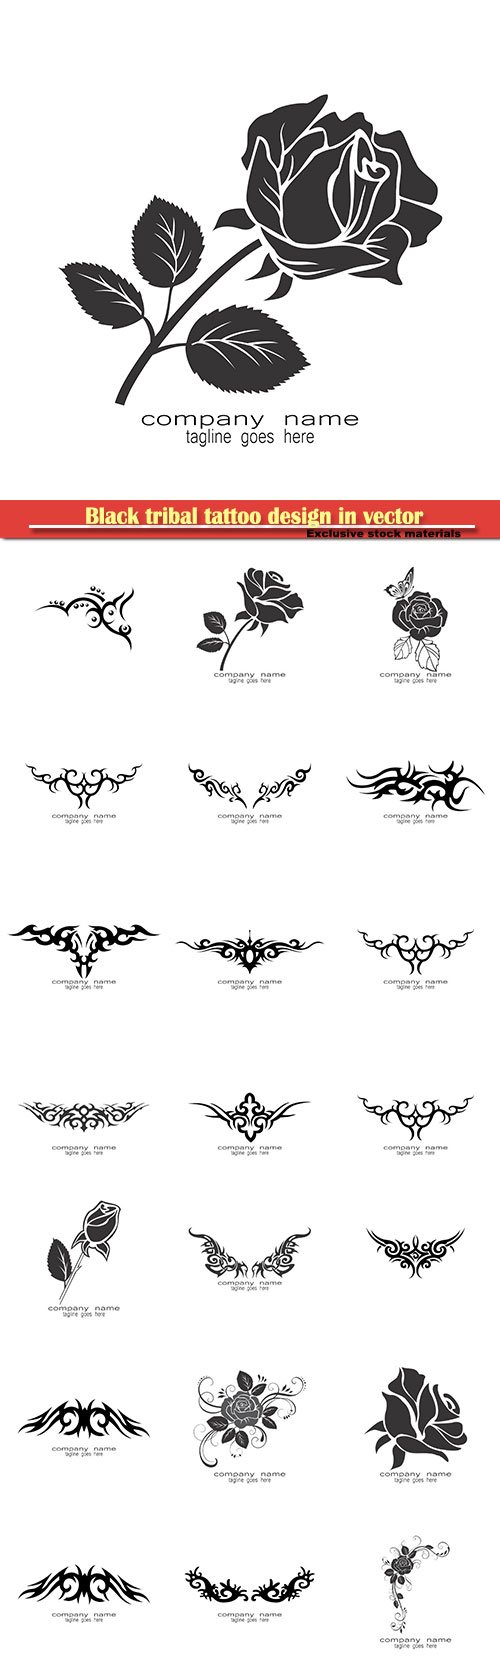 Black tribal tattoo design in vector illustration